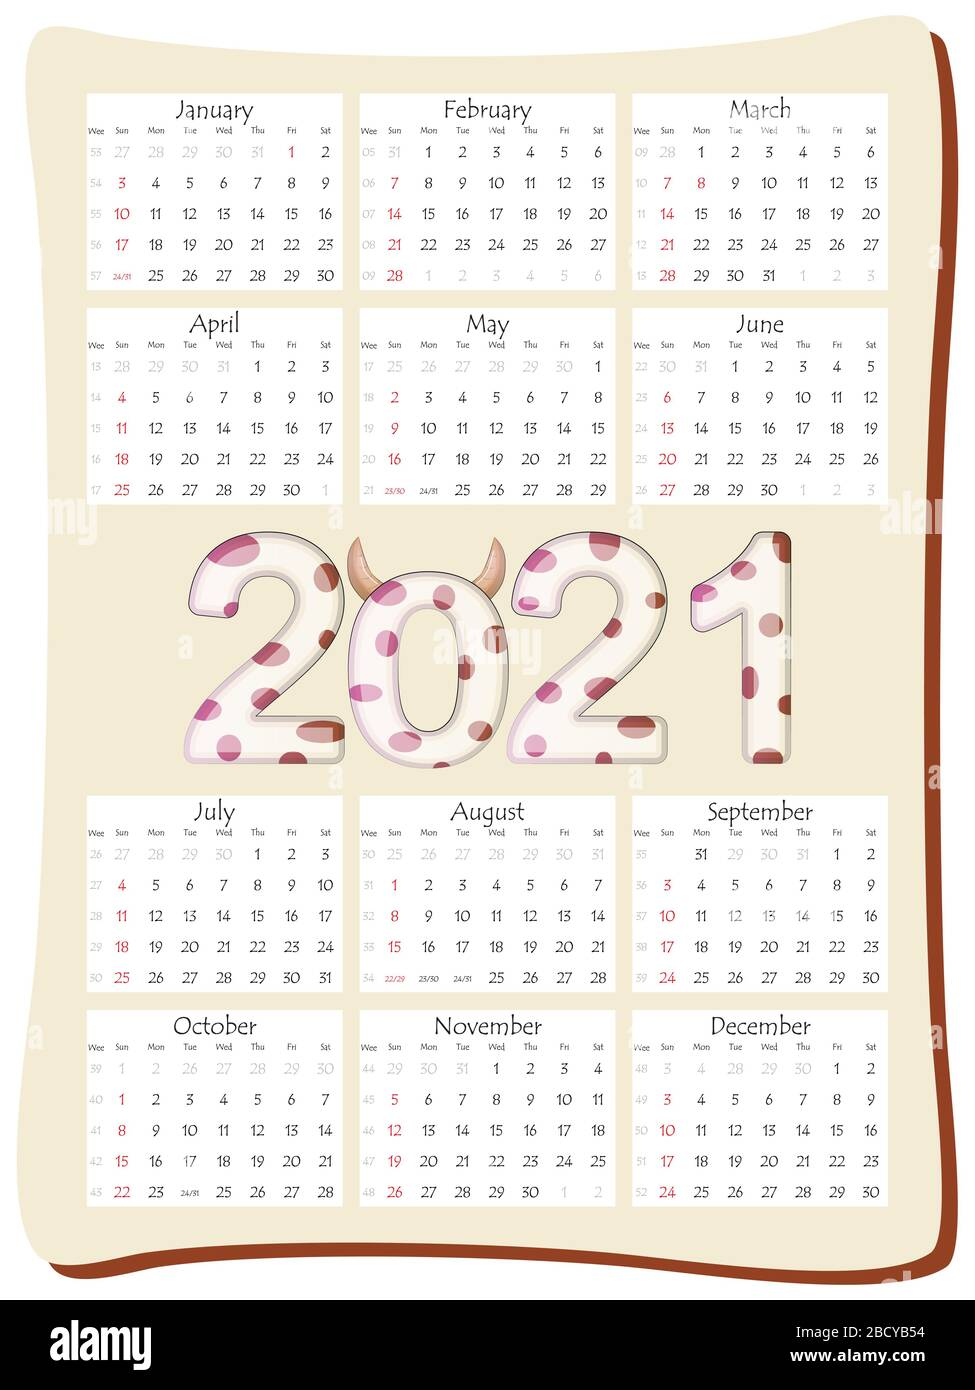 Yearly Calendar High Resolution Stock Photography and Images   Alamy